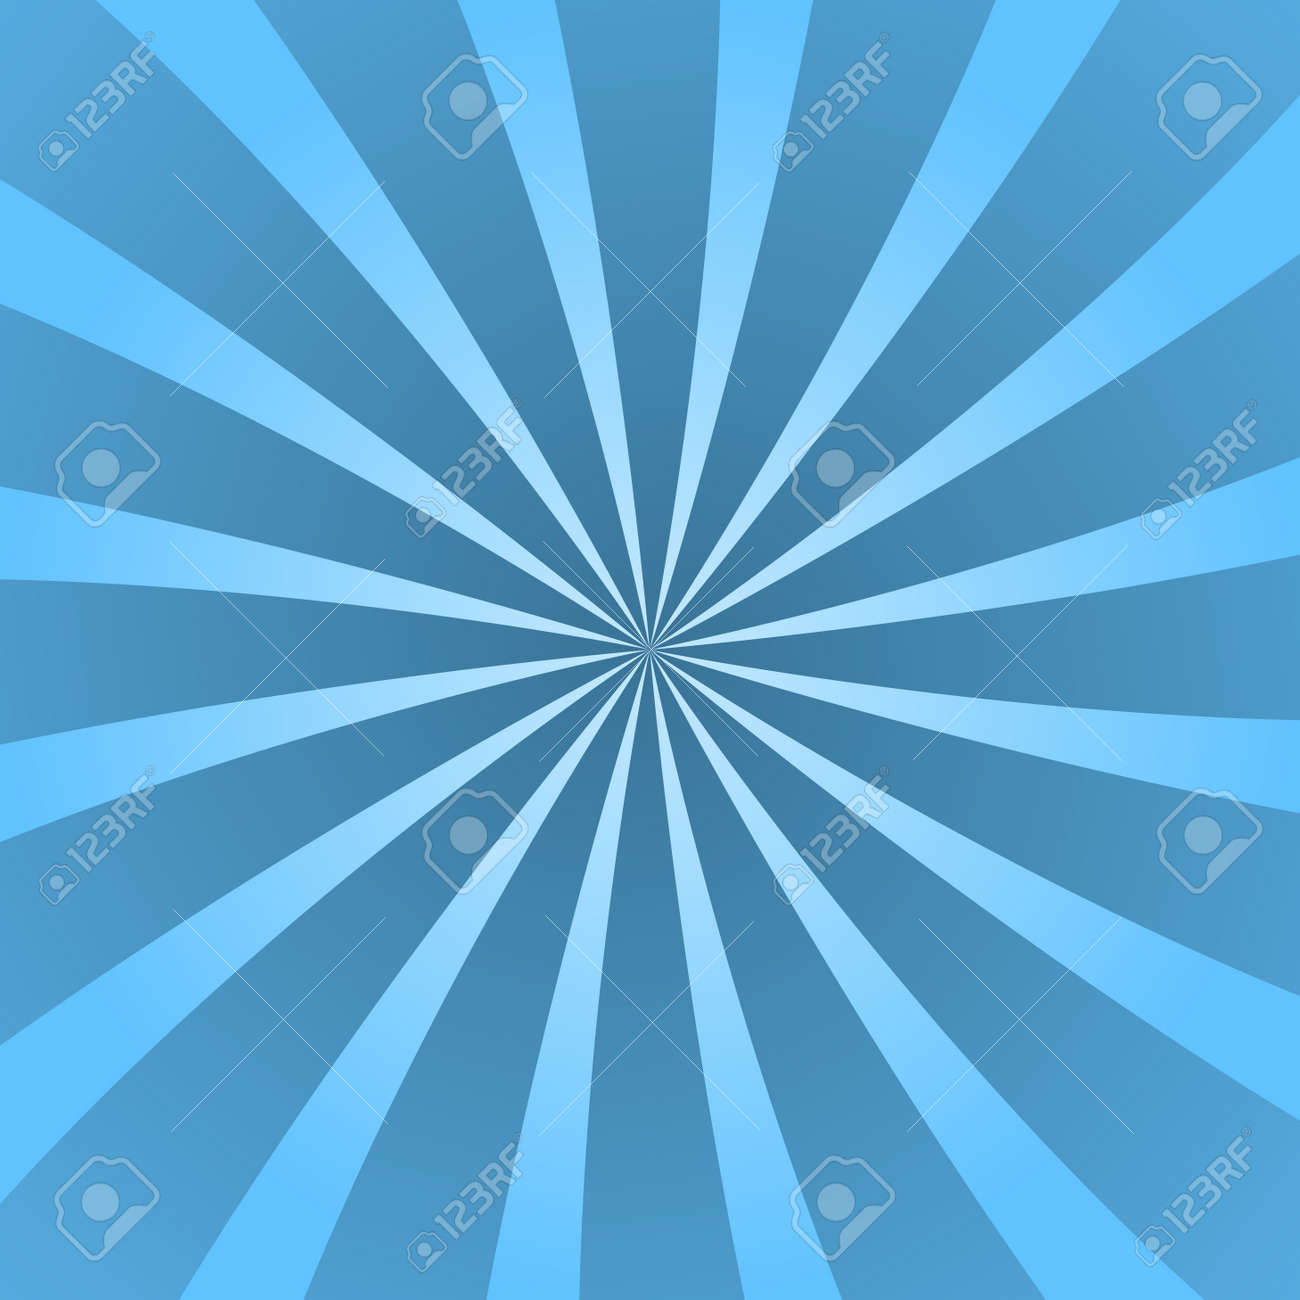 Blue Rays Poster Popular Ray Star Burst Background Television